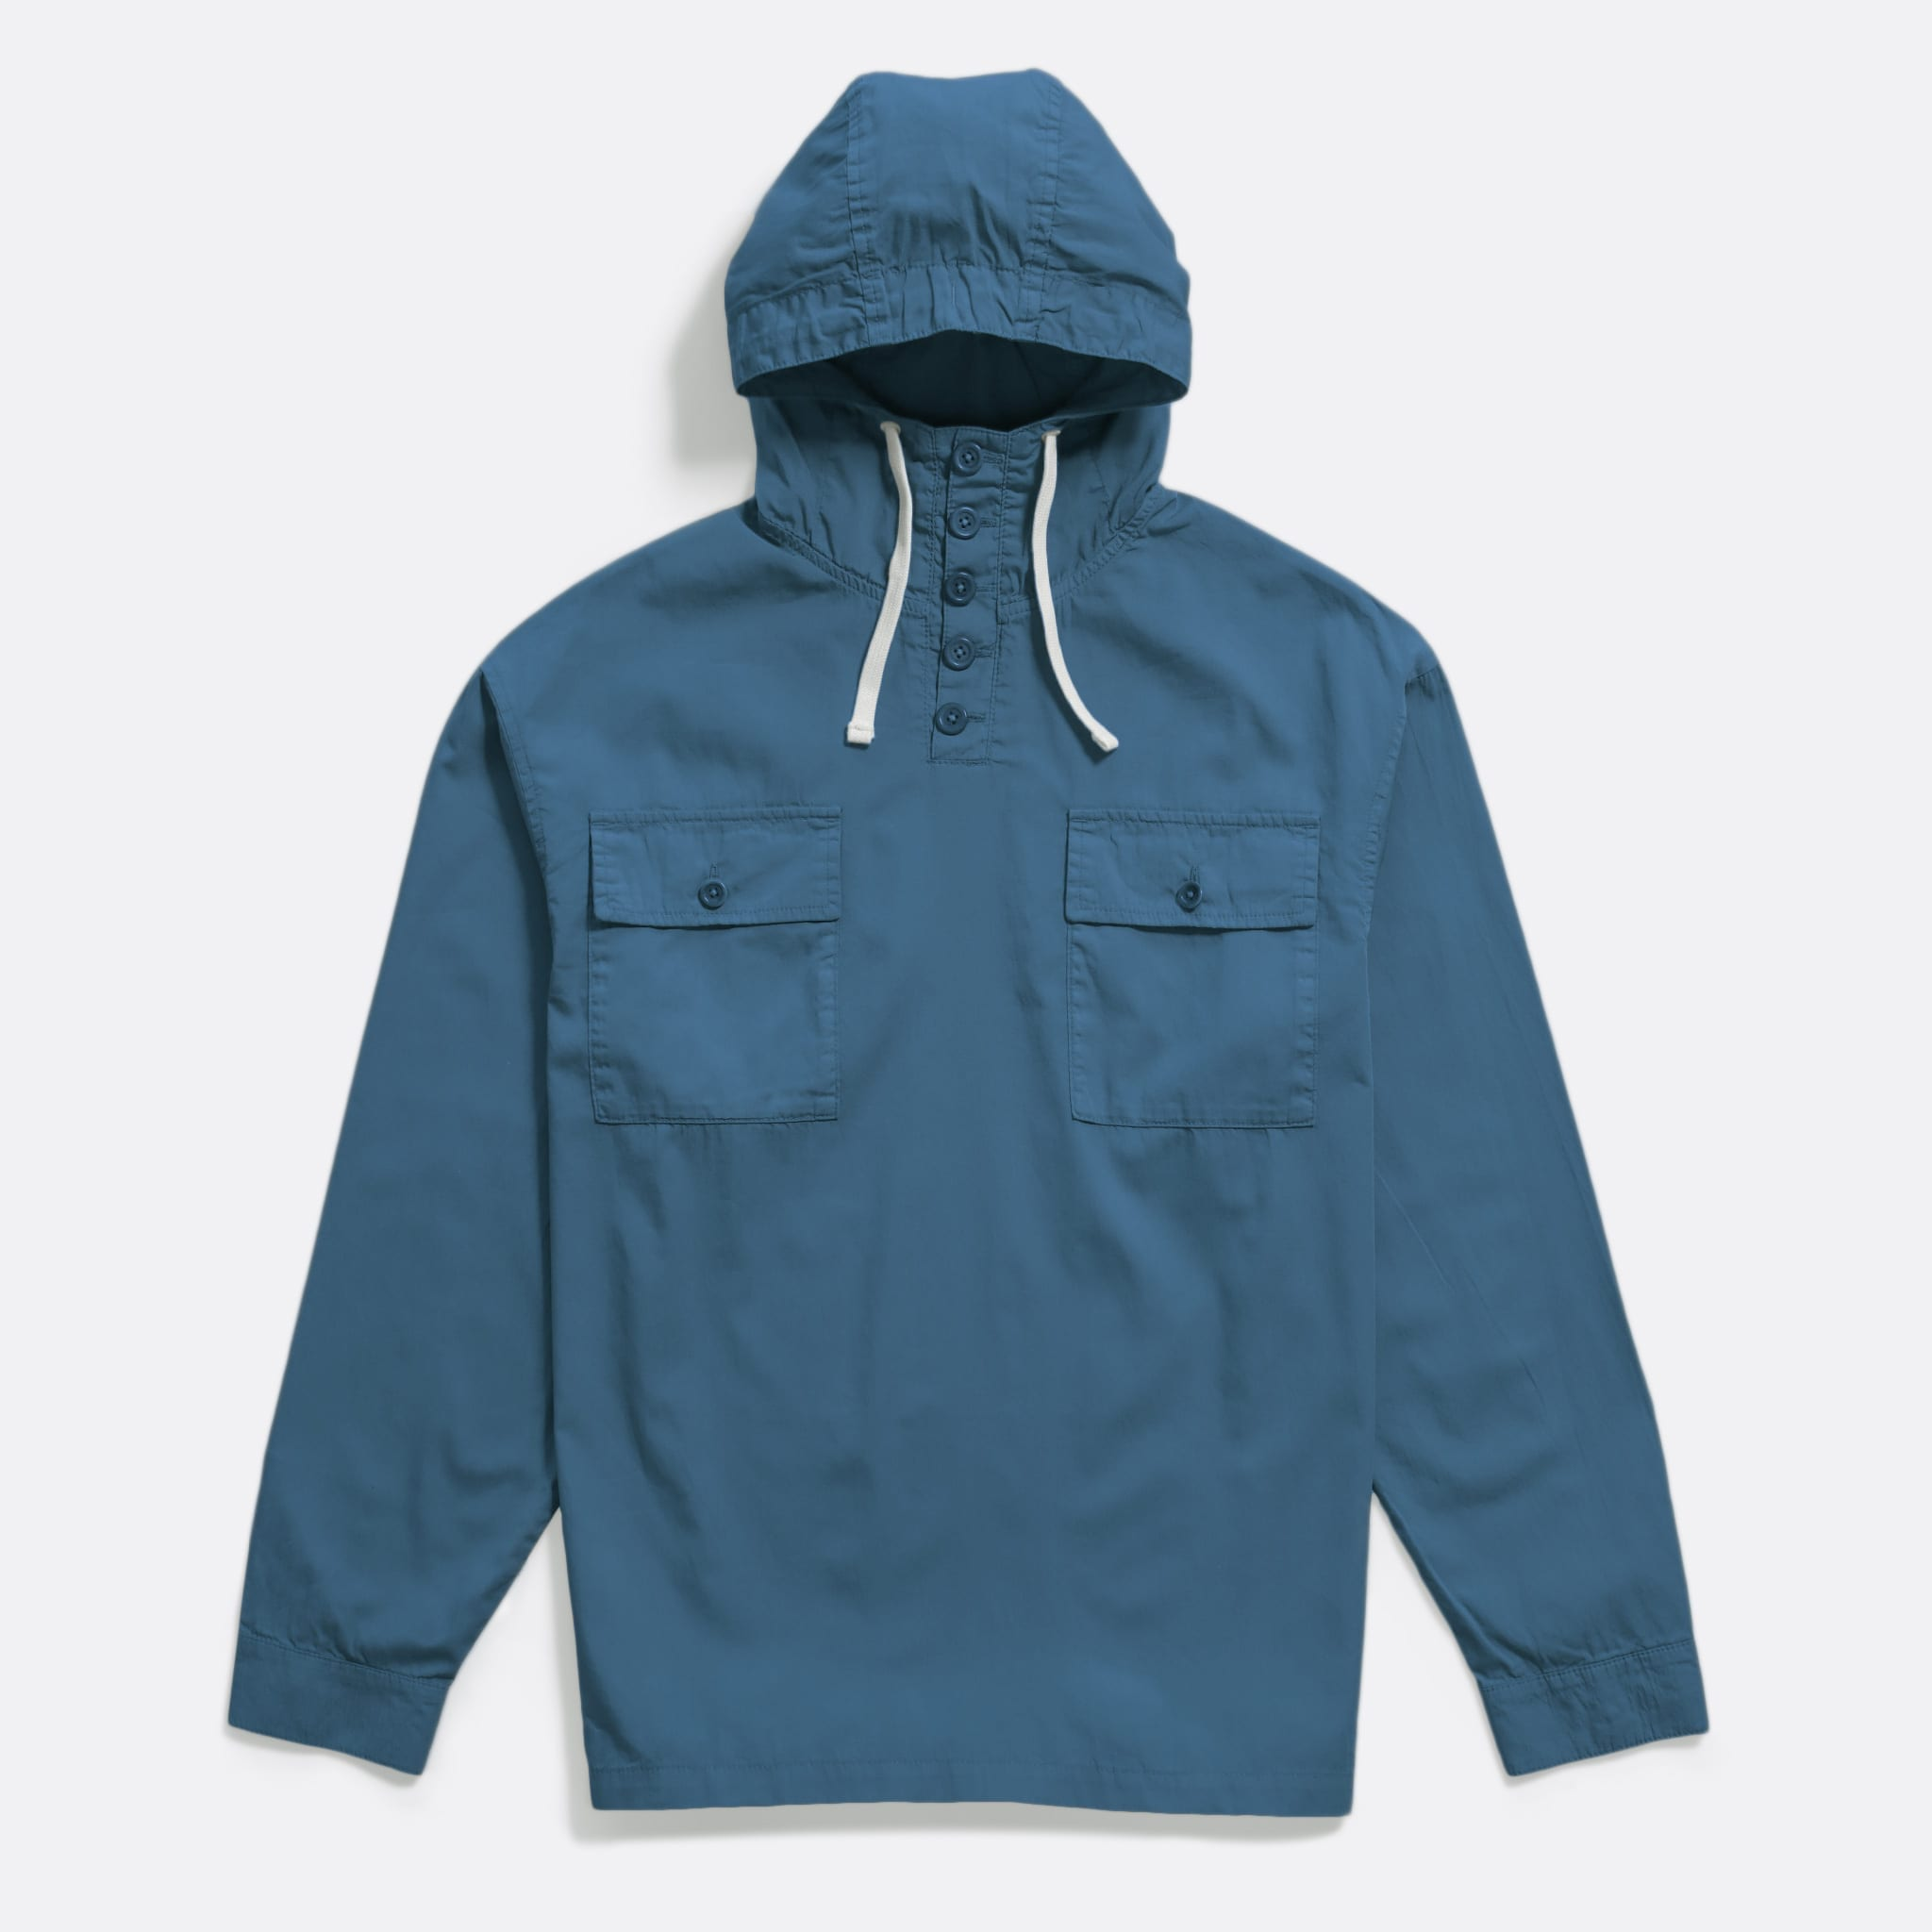 Far Afield Portree Smock a Ensign Blue BCI Cotton Portree Smock Jacket